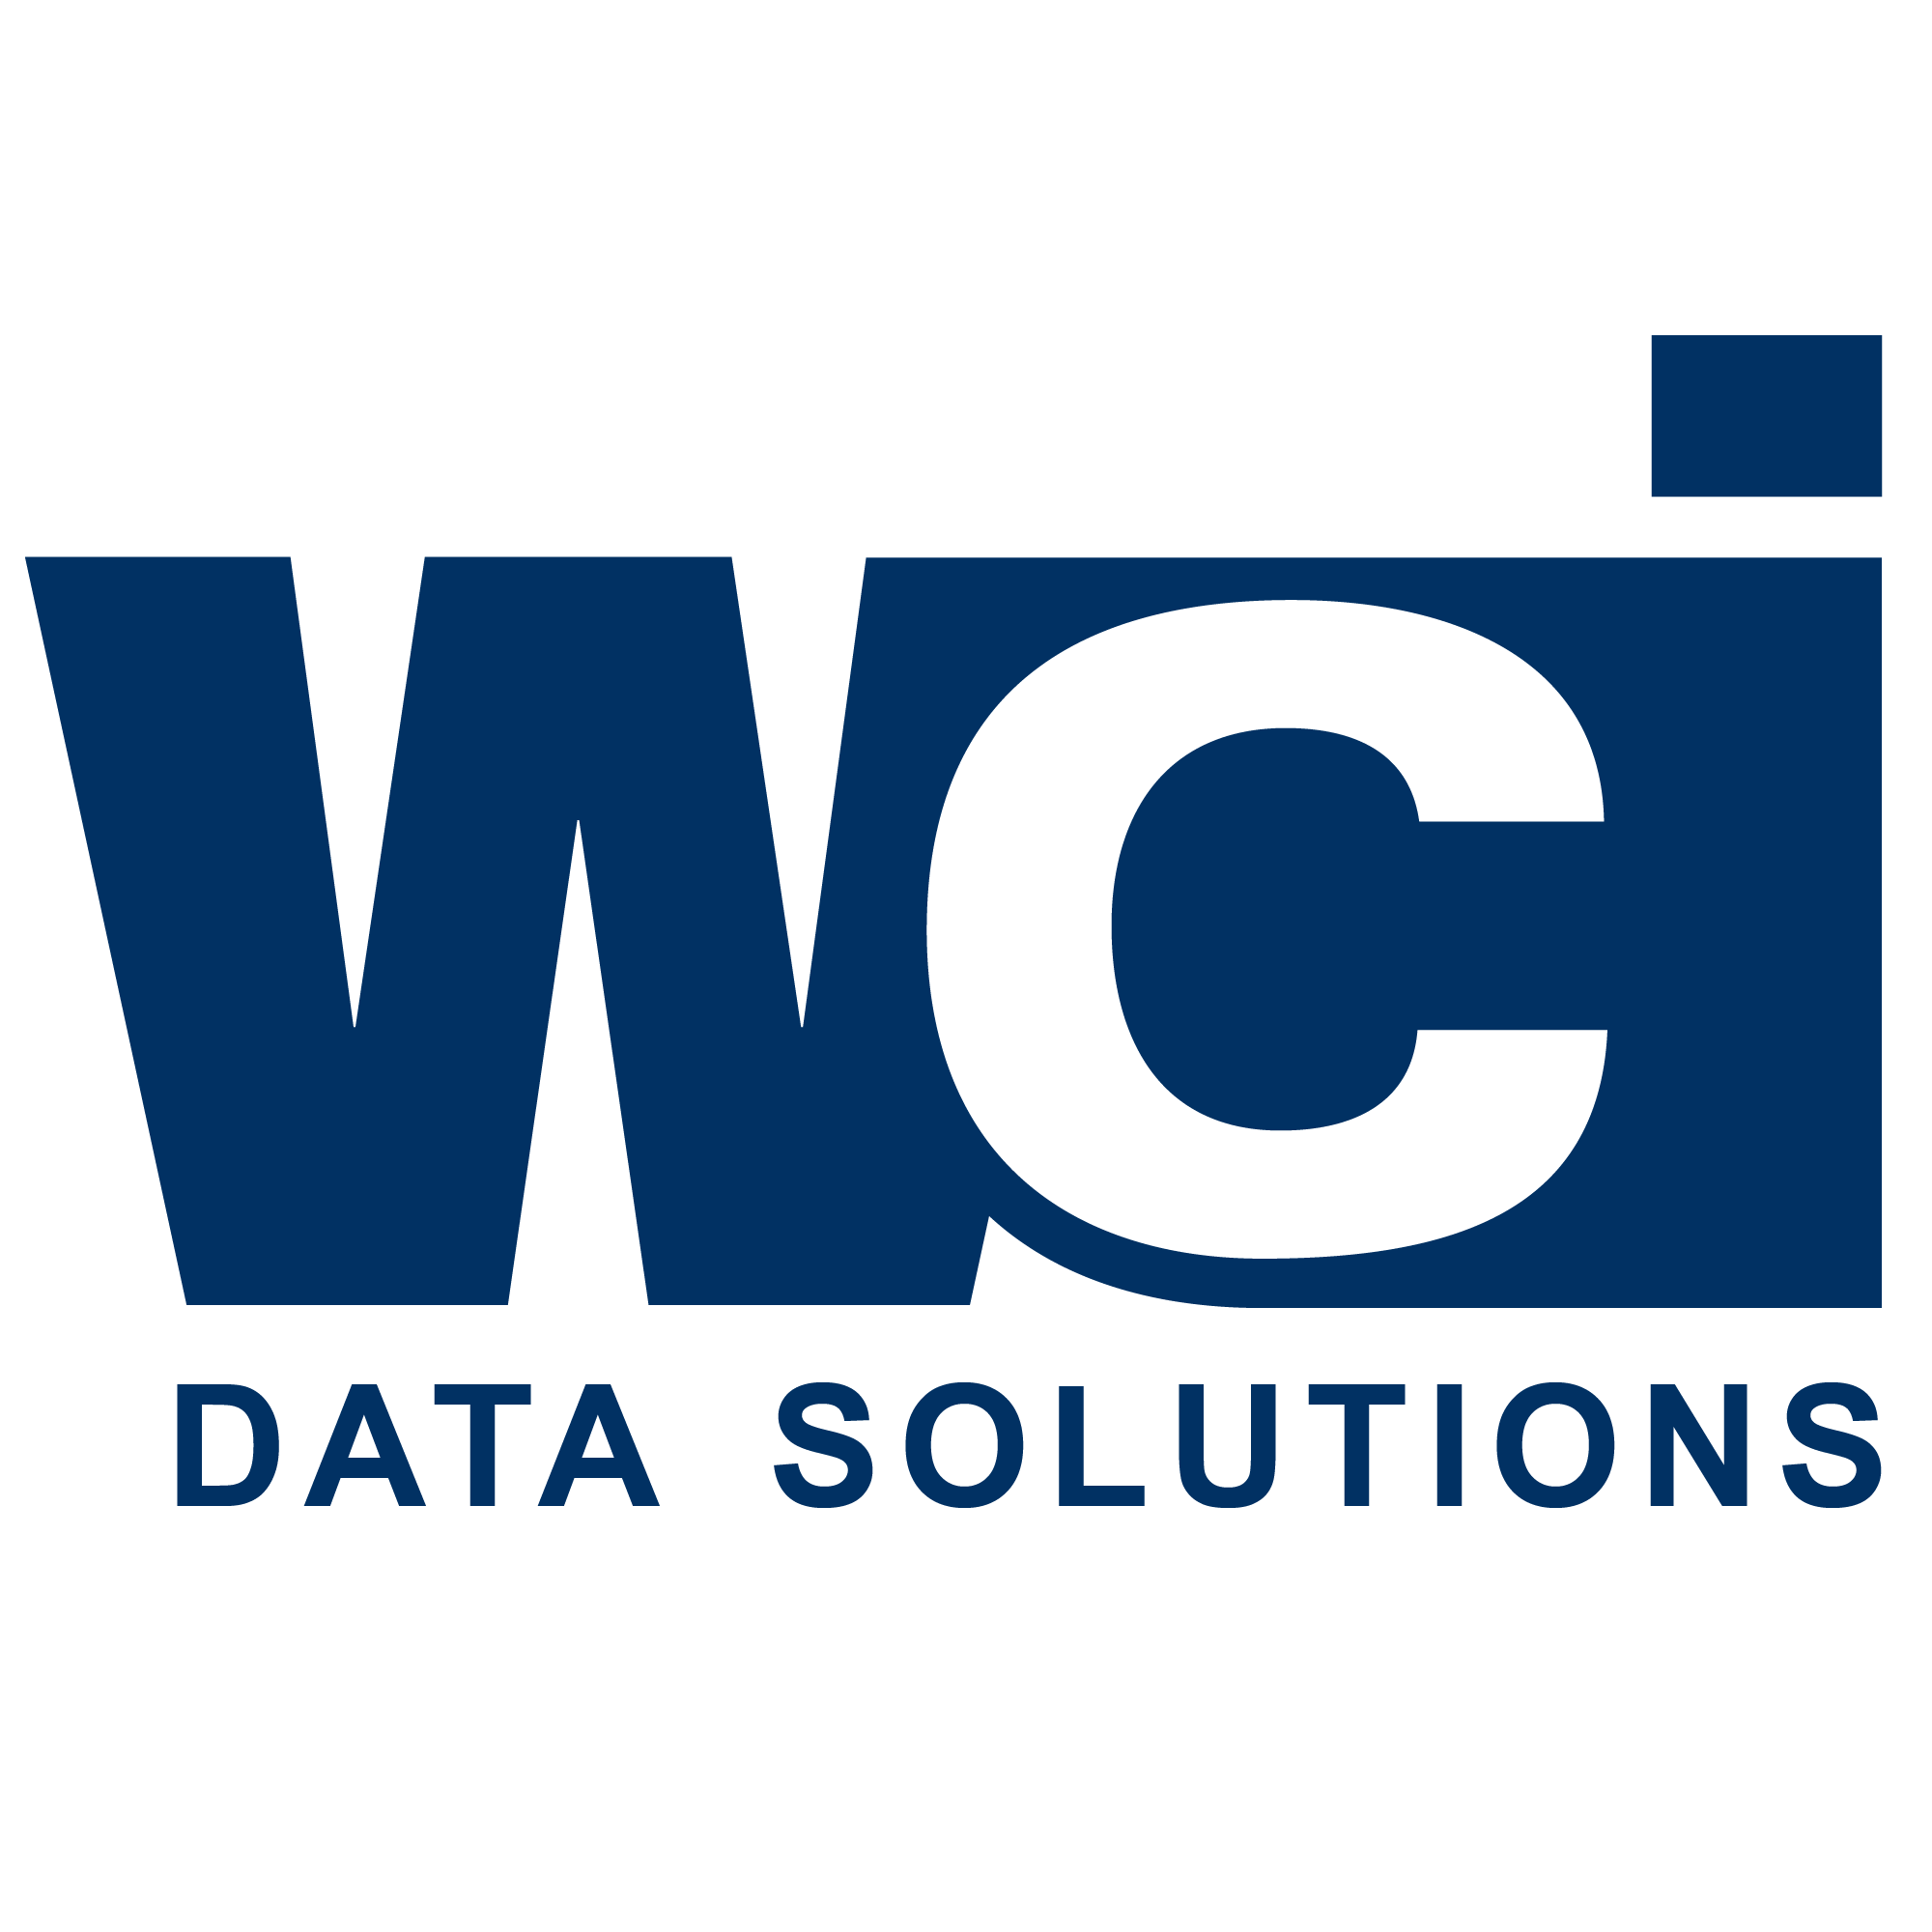 WCI-Data-Solutions-logo.png